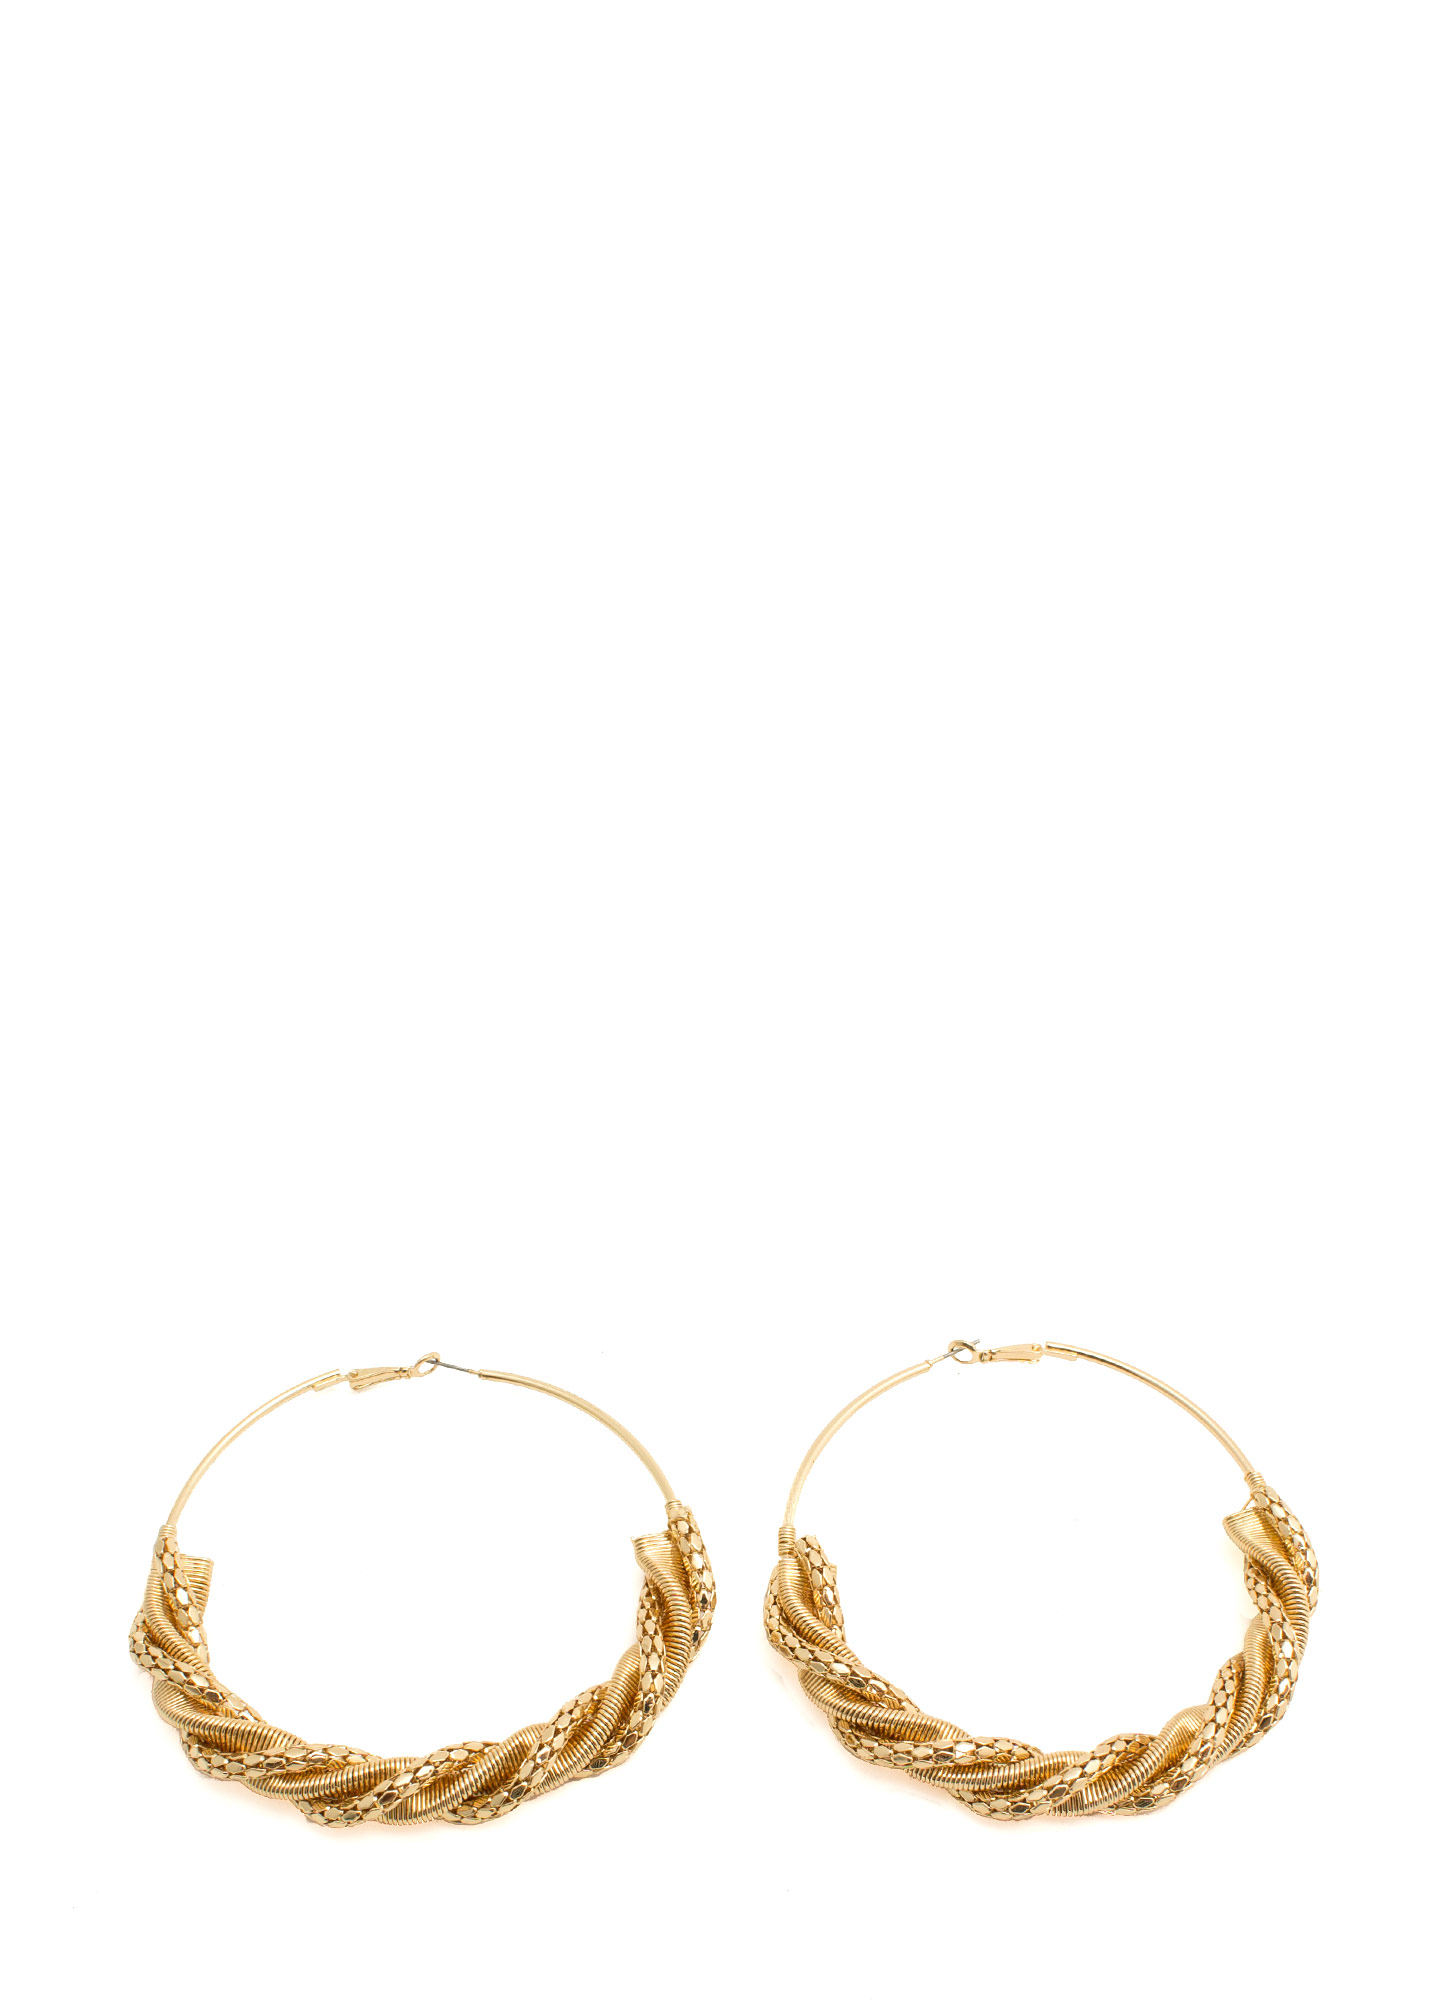 Oversized Twisted Chain Hoop Earrings GOLD